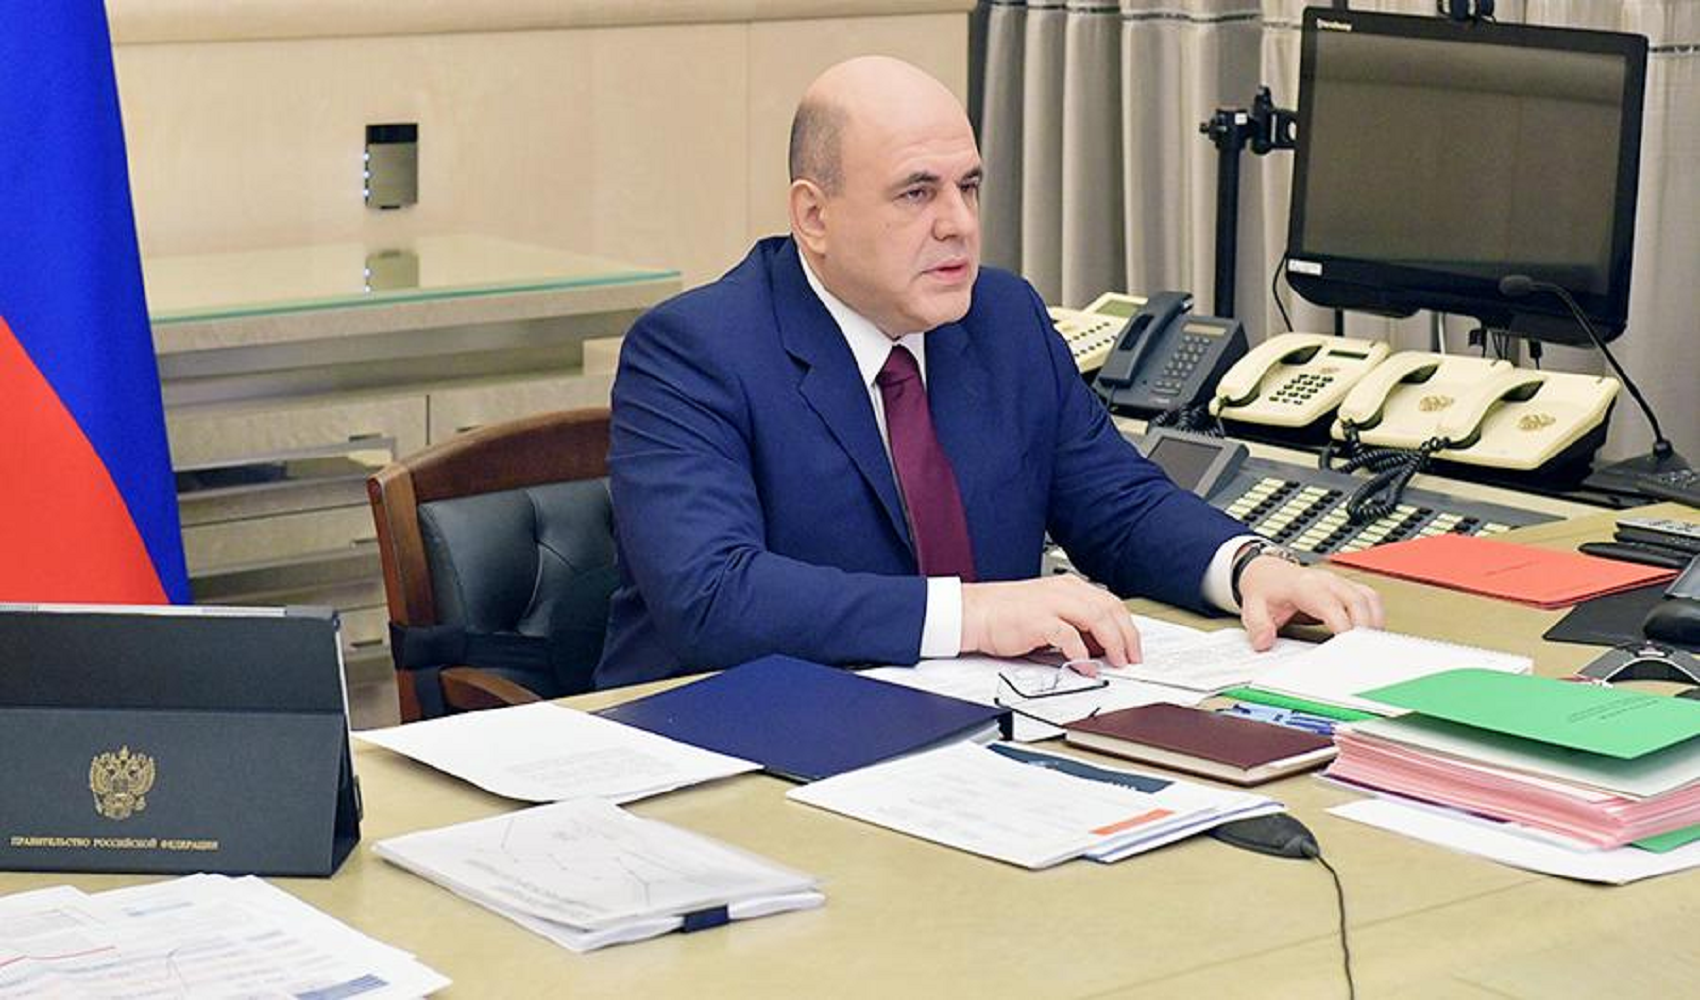 Large companies from the sectors affected by COVD-19 will also be able to use interest-free loans in Russia. This statement was made on Thursday, April 23, by Prime Minister Mikhail Mishustin